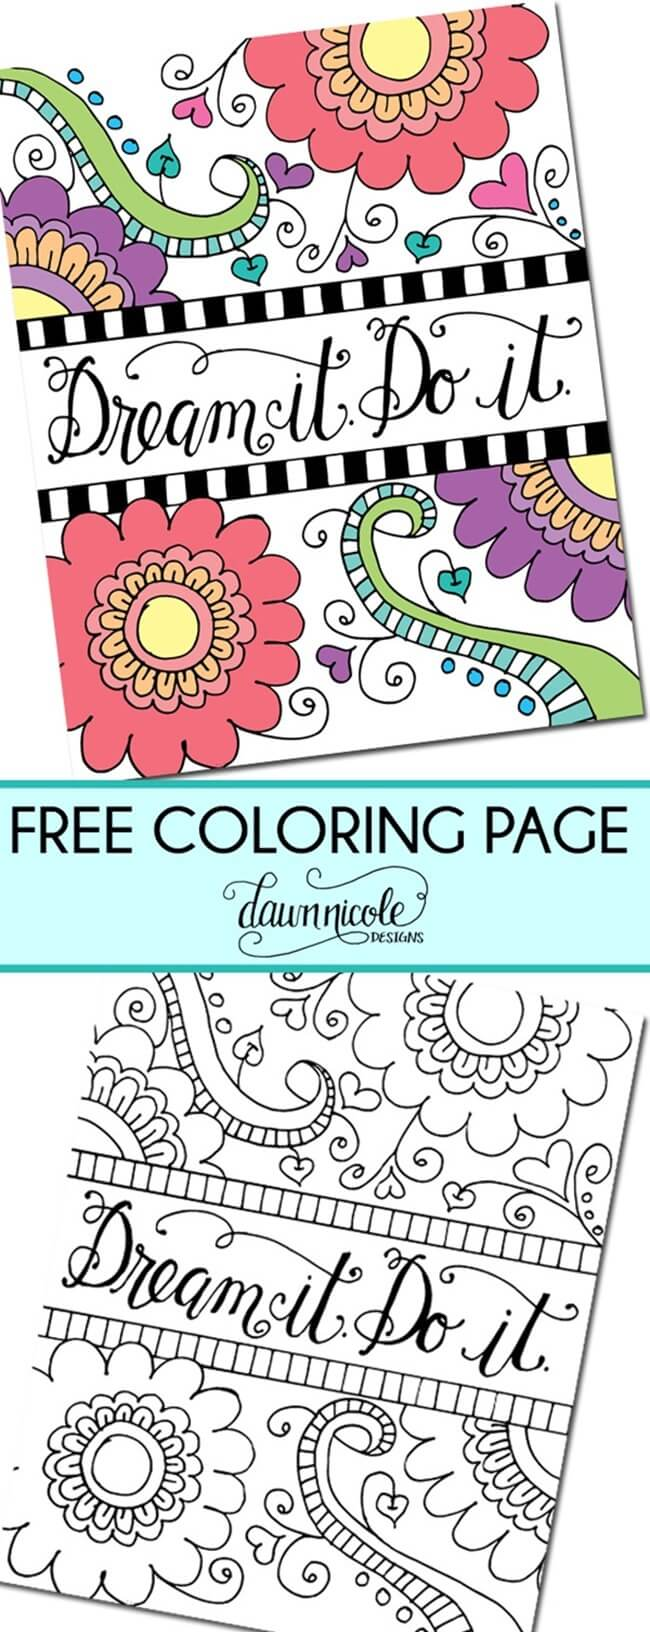 Free-Printable Coloring-Pages-for-Adults-Dream-It